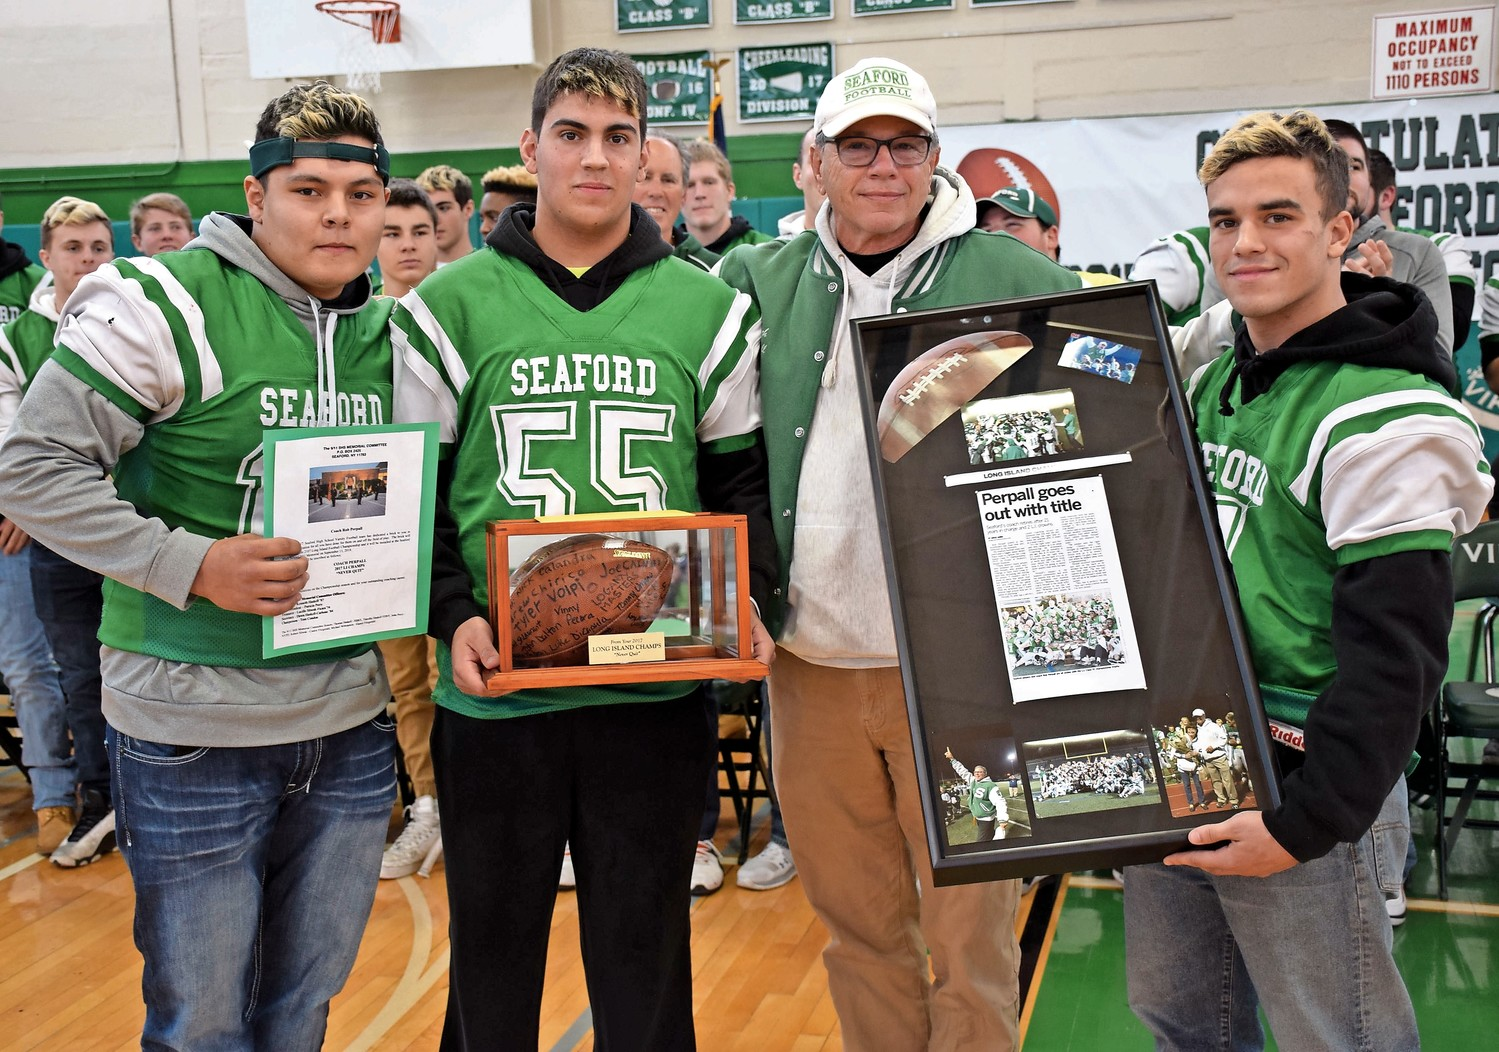 Seaford High School football captains Nicholas Calandra, far left, Andrew Chirico, second from left, and Tyler Volpi, right, presented gifts to retiring coach Robert Perpall, including a football signed by all of the team's players and a plaque commemorating the championship game.